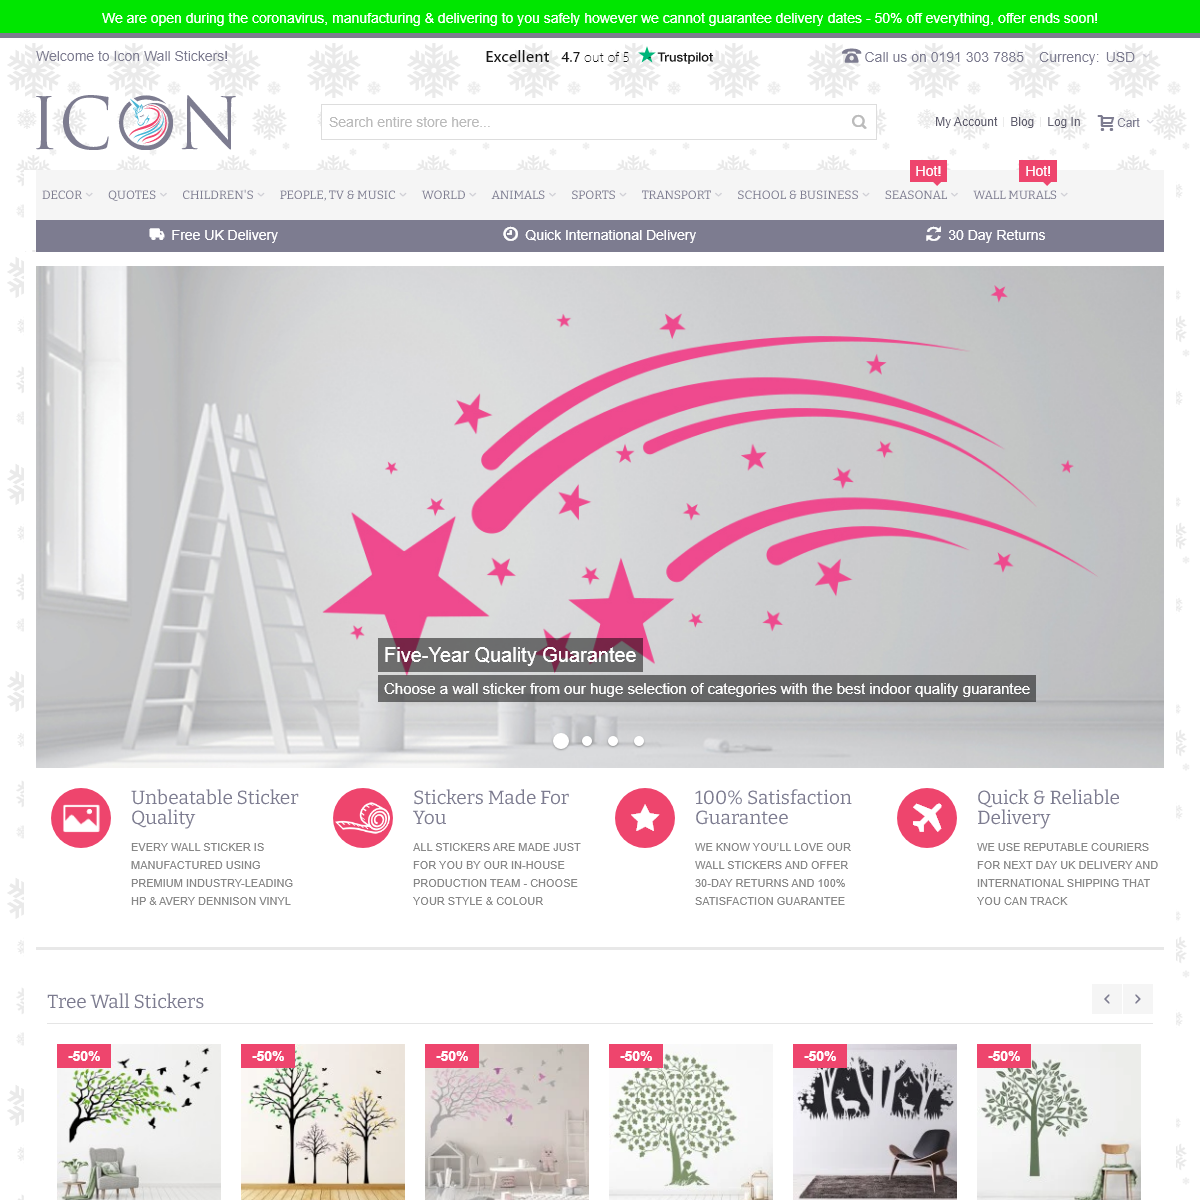 Wall Stickers & Decals - ICON